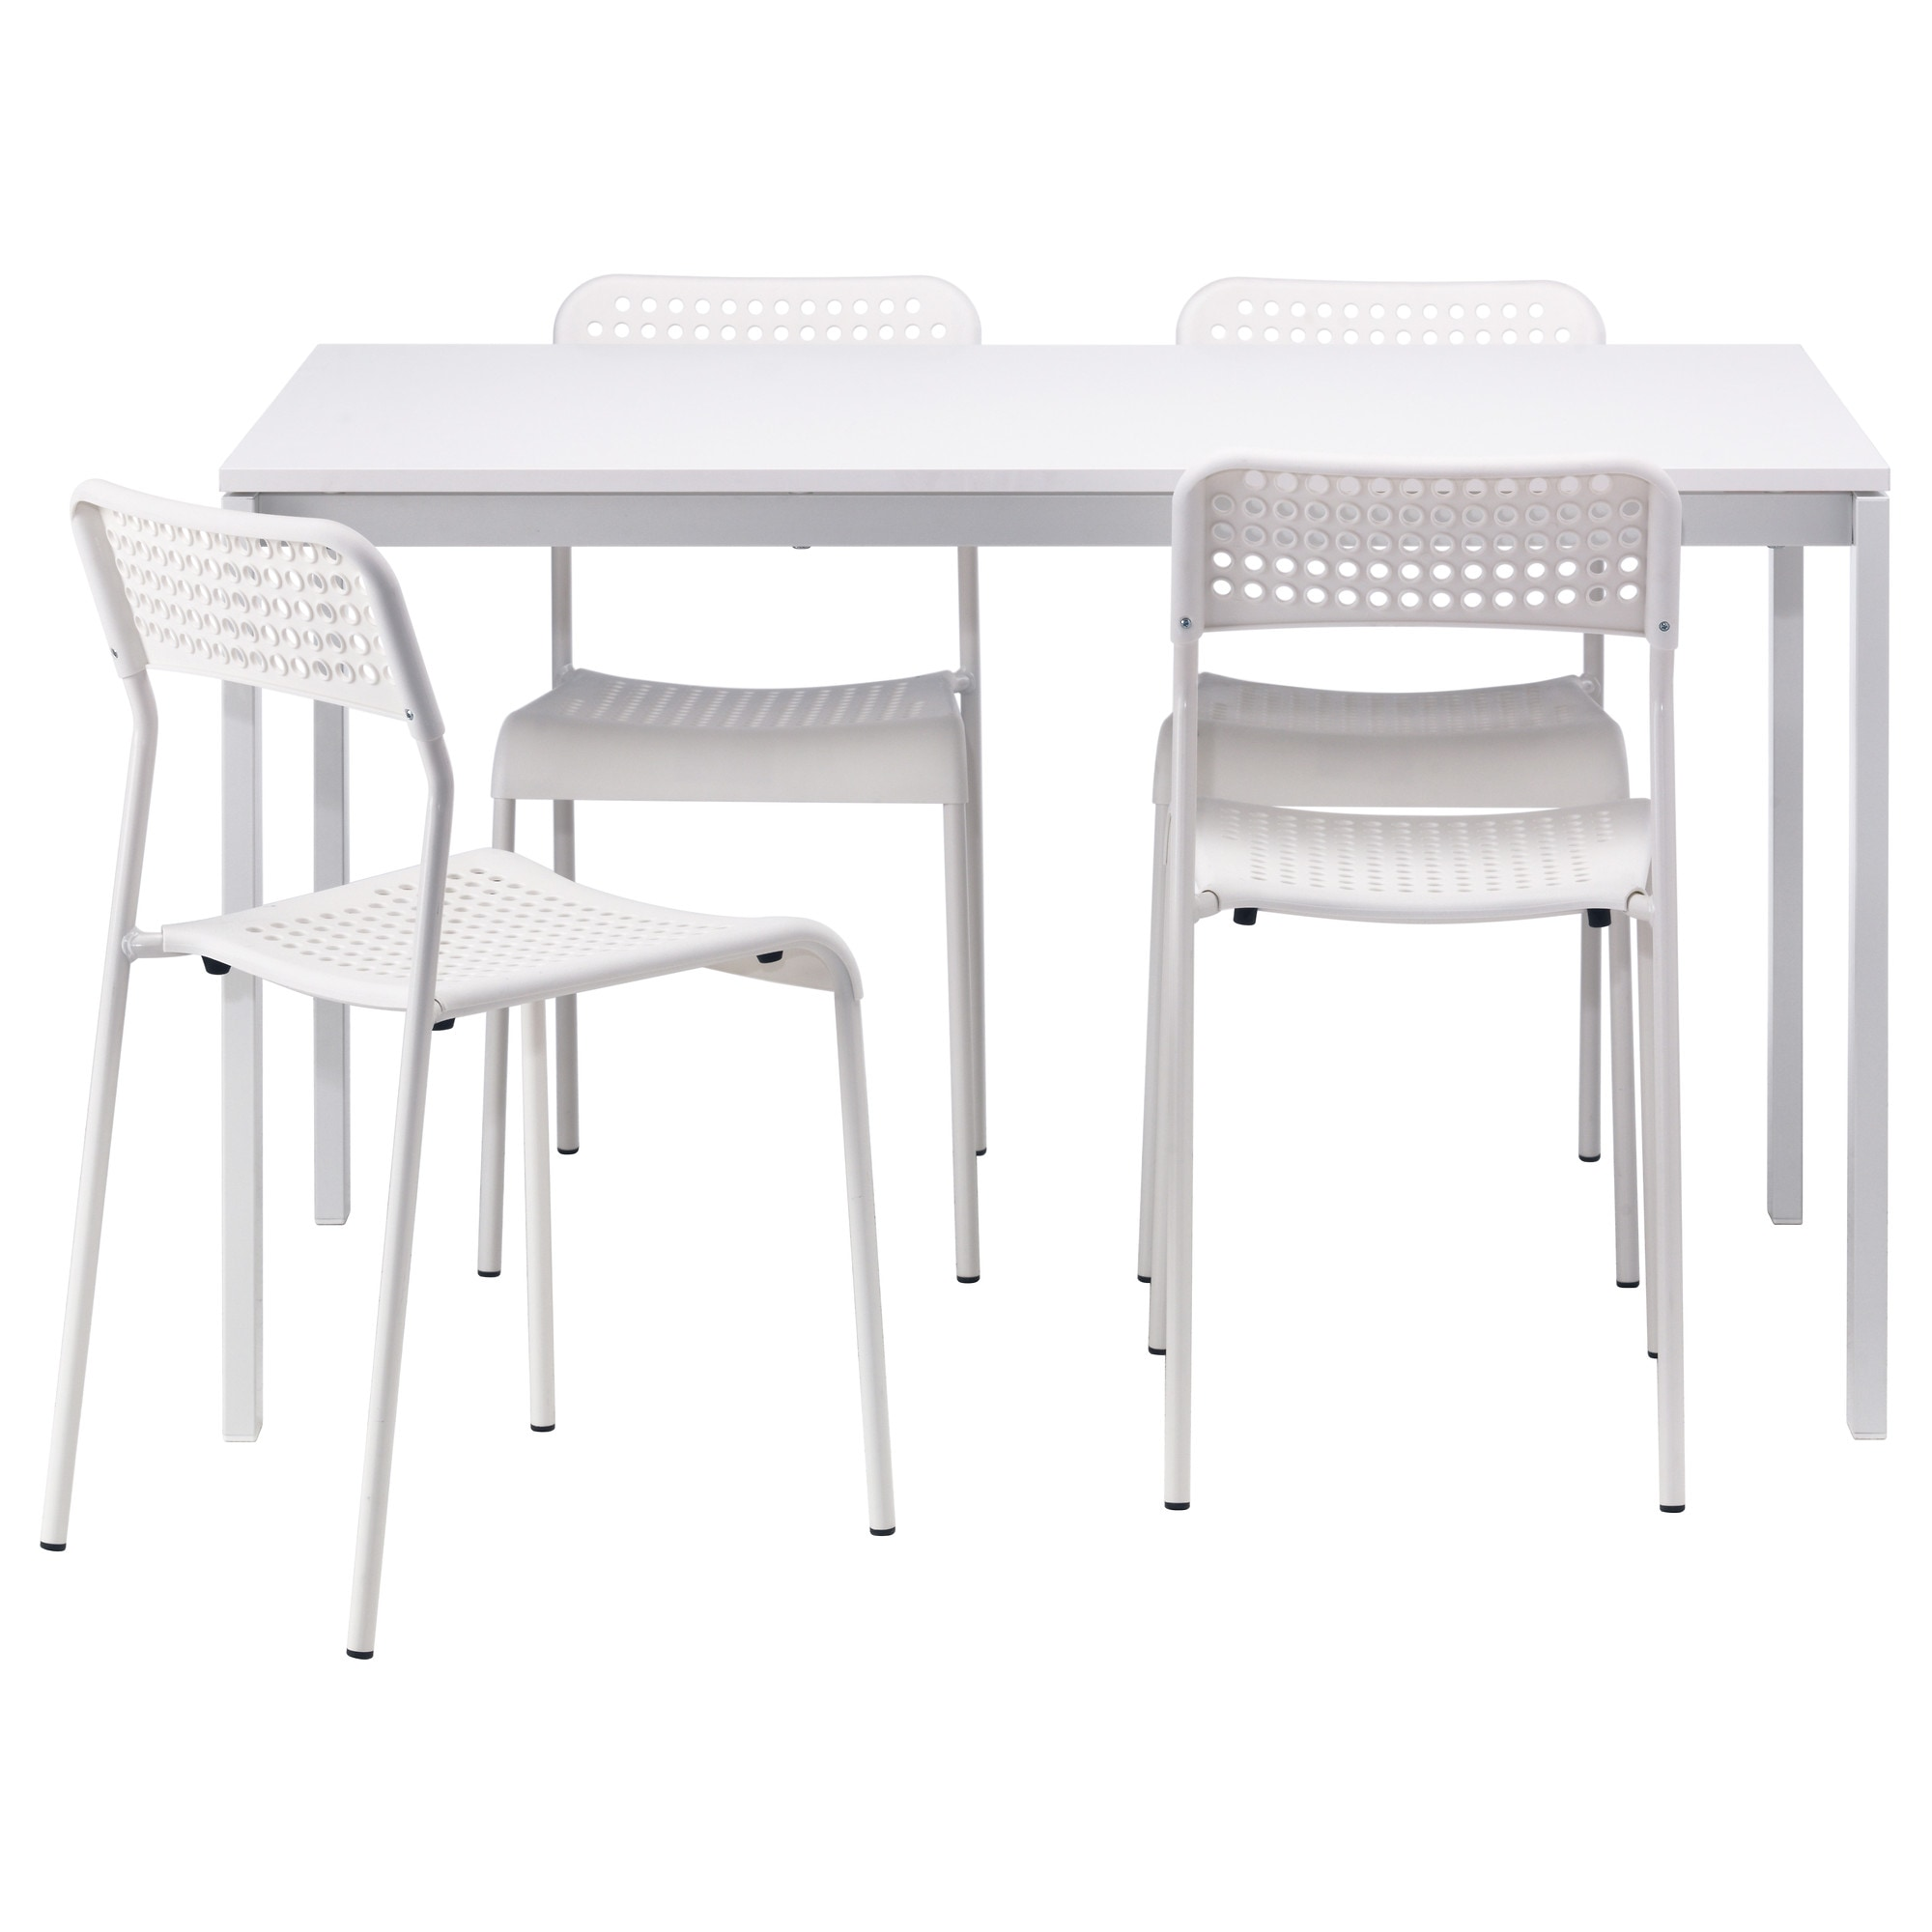 MELLTORP ADDE Table And 4 Chairs